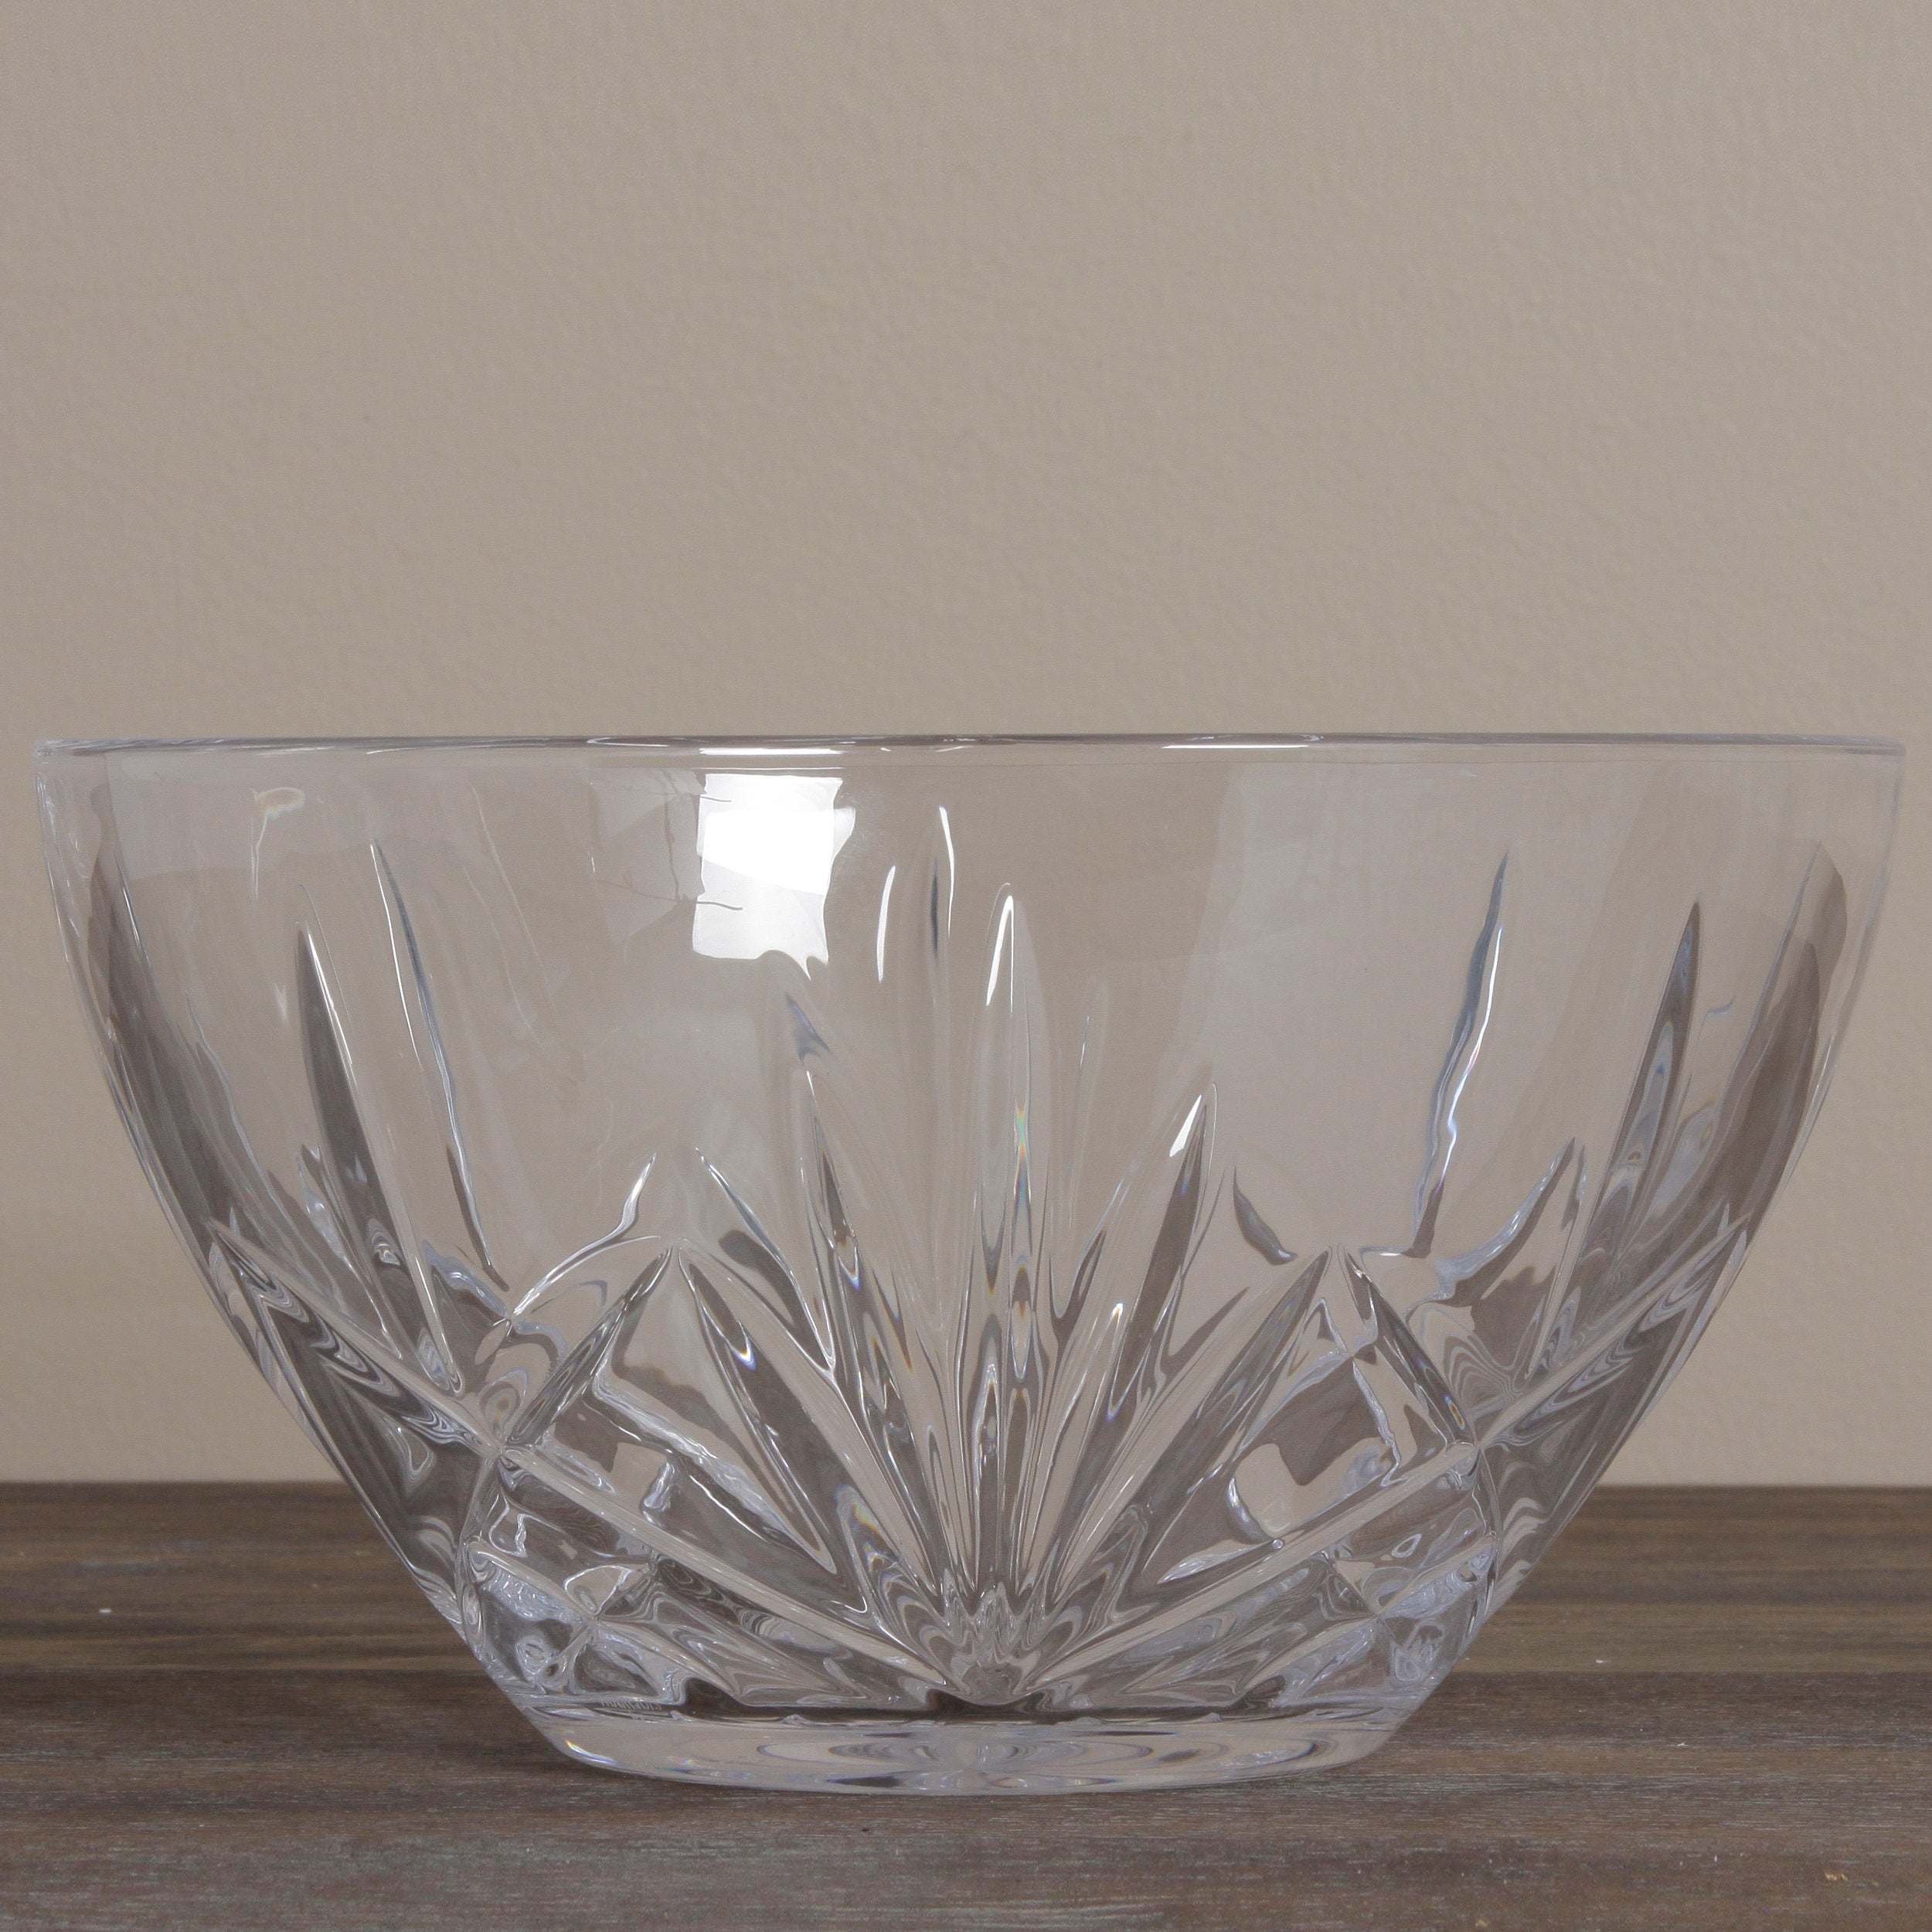 shop warterford marquis 10 inch glass serving bowl overstock 7516809 warterford marquis 10 inch glass serving bowl